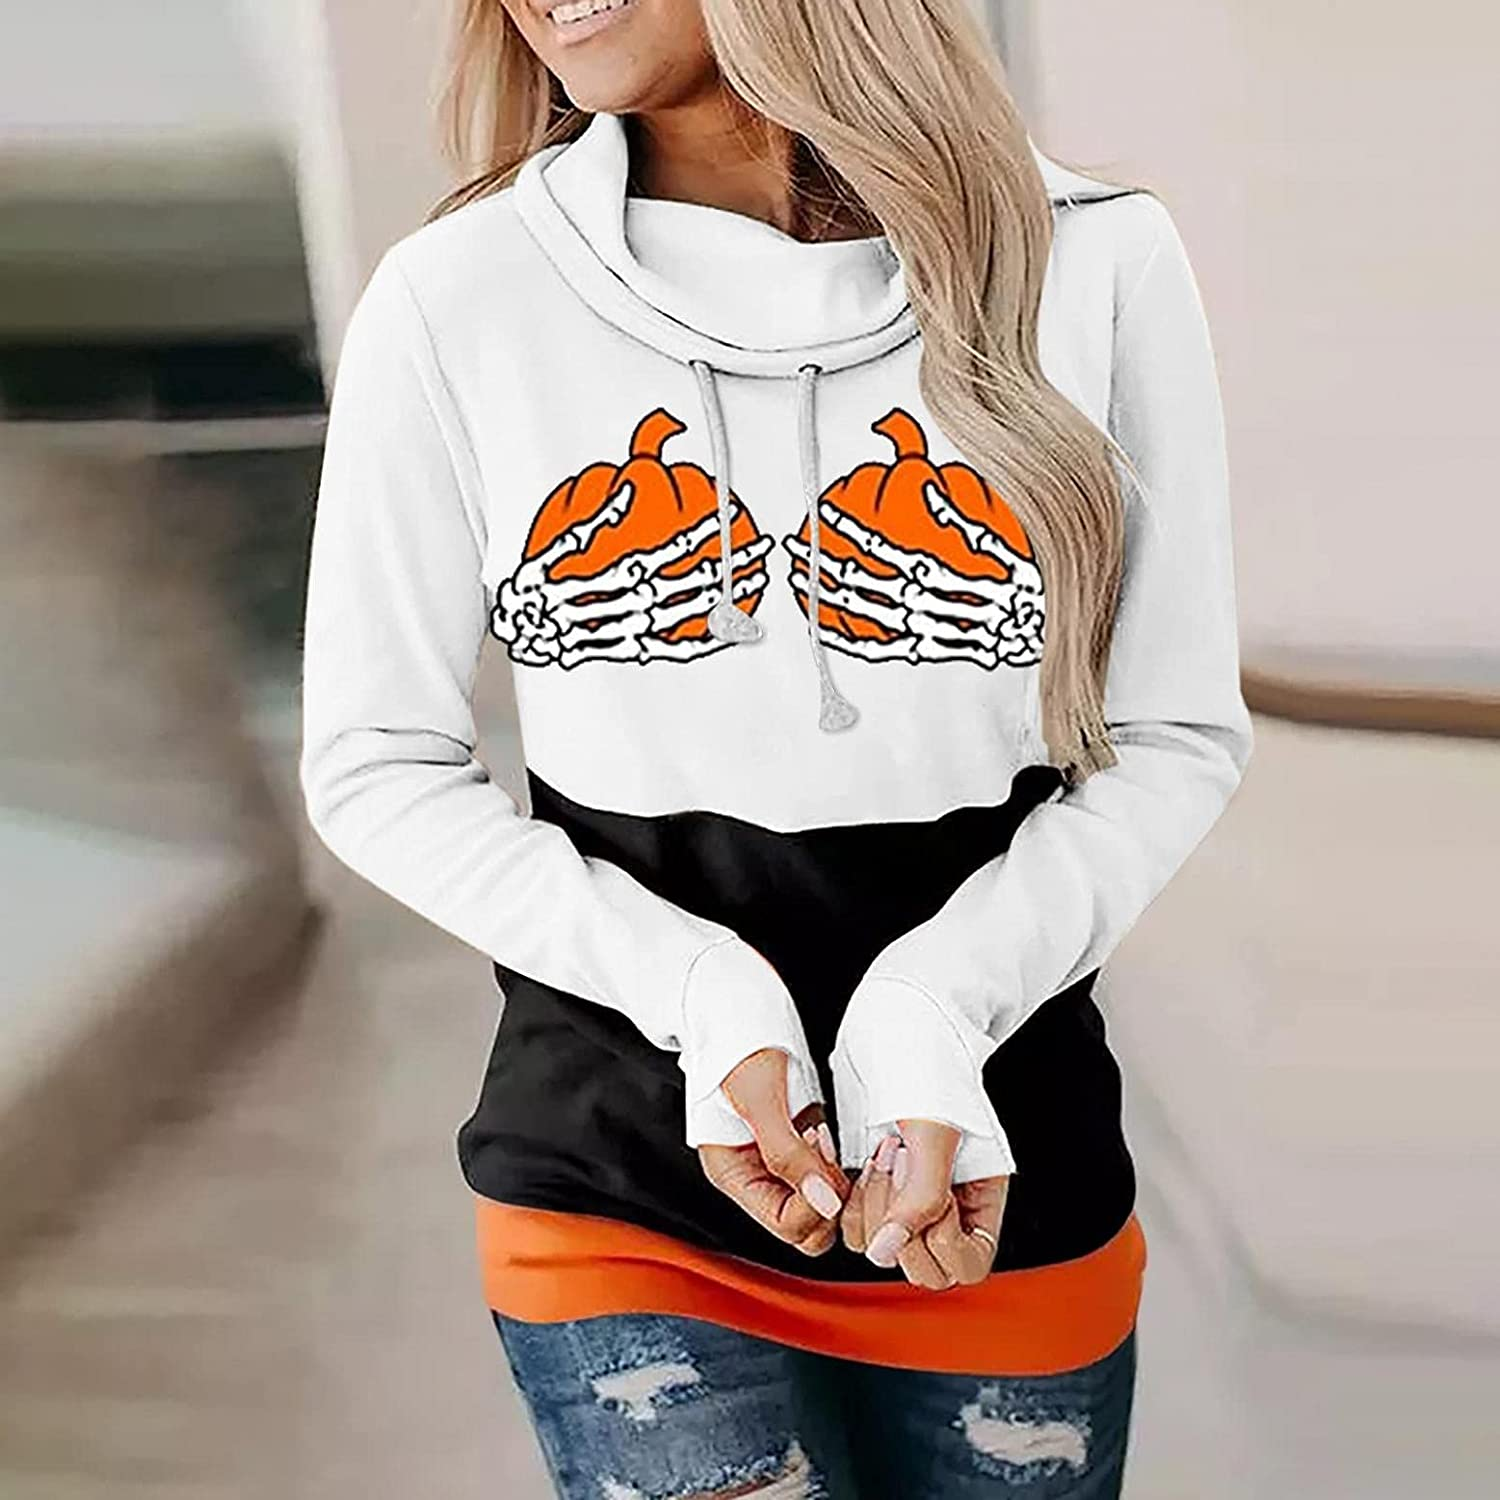 Women Long Sleeve Halloween Sweatshirt Stitching Print Loose Tops Casual Cute Hooded Blouse for Lady